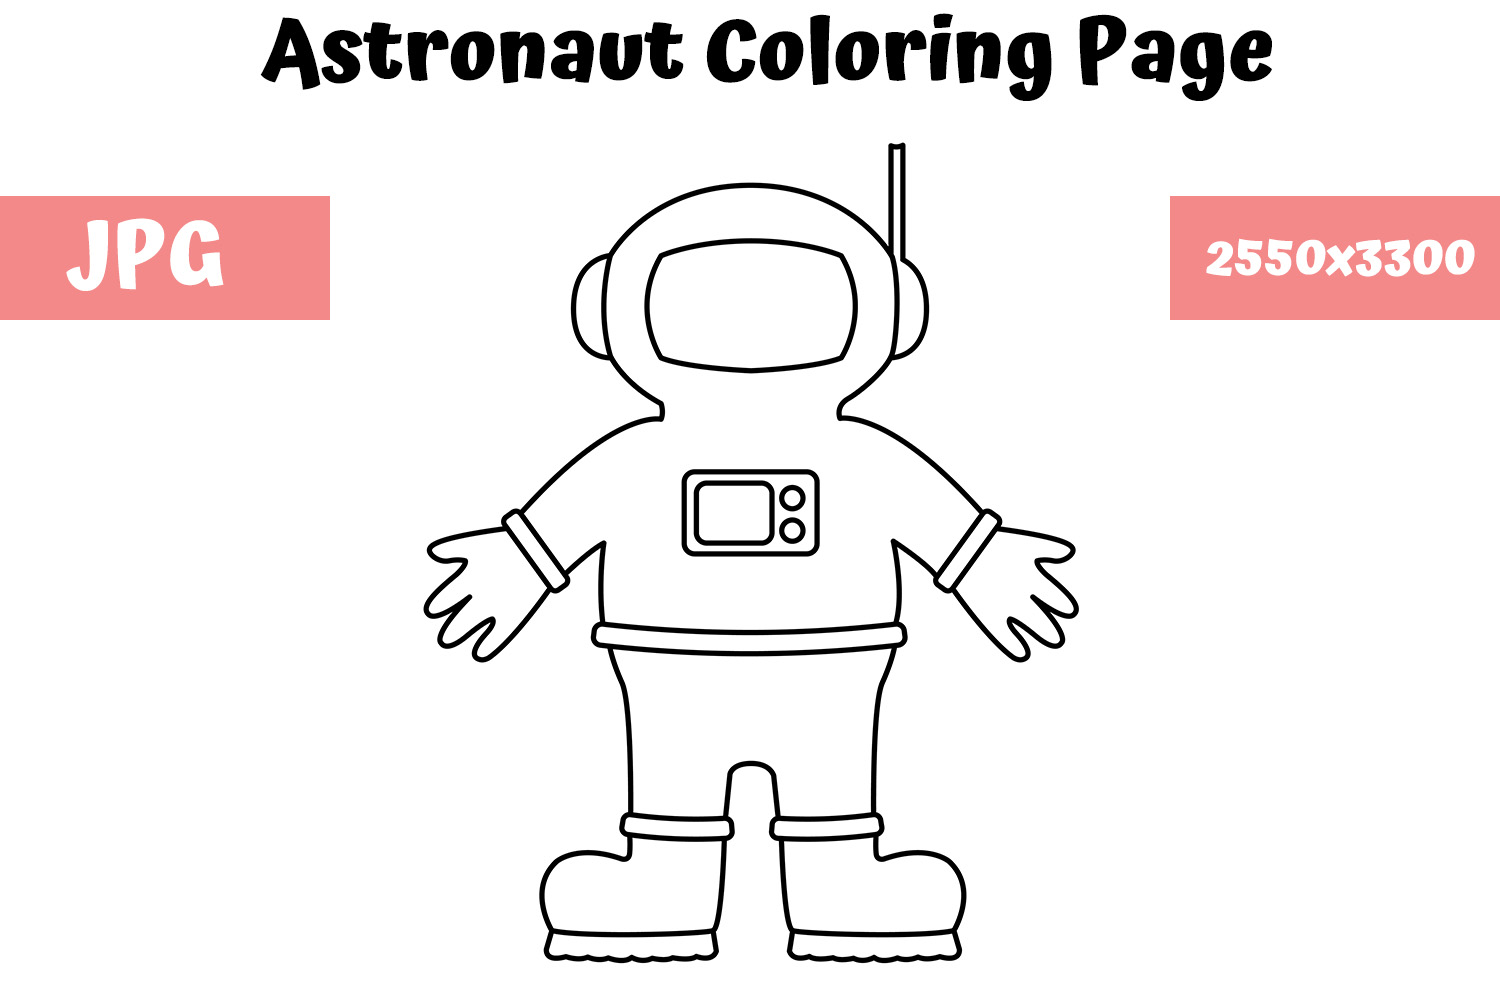 Printable Astronaut Coloring Pages For Kids | 1000x1500